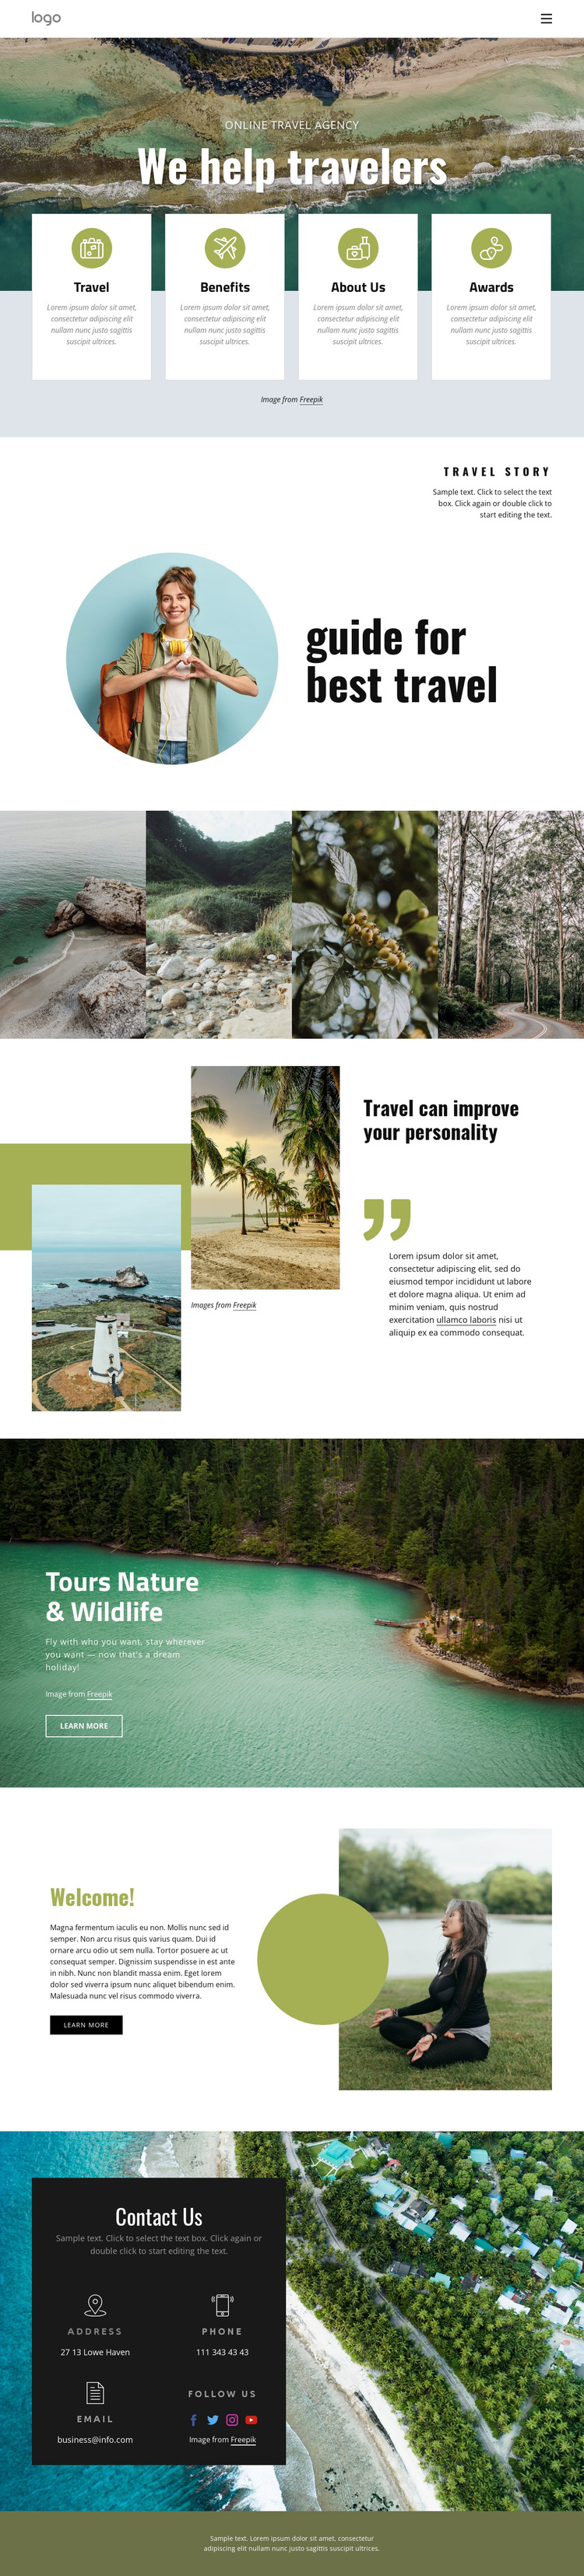 We help manage your trip HTML5 Template